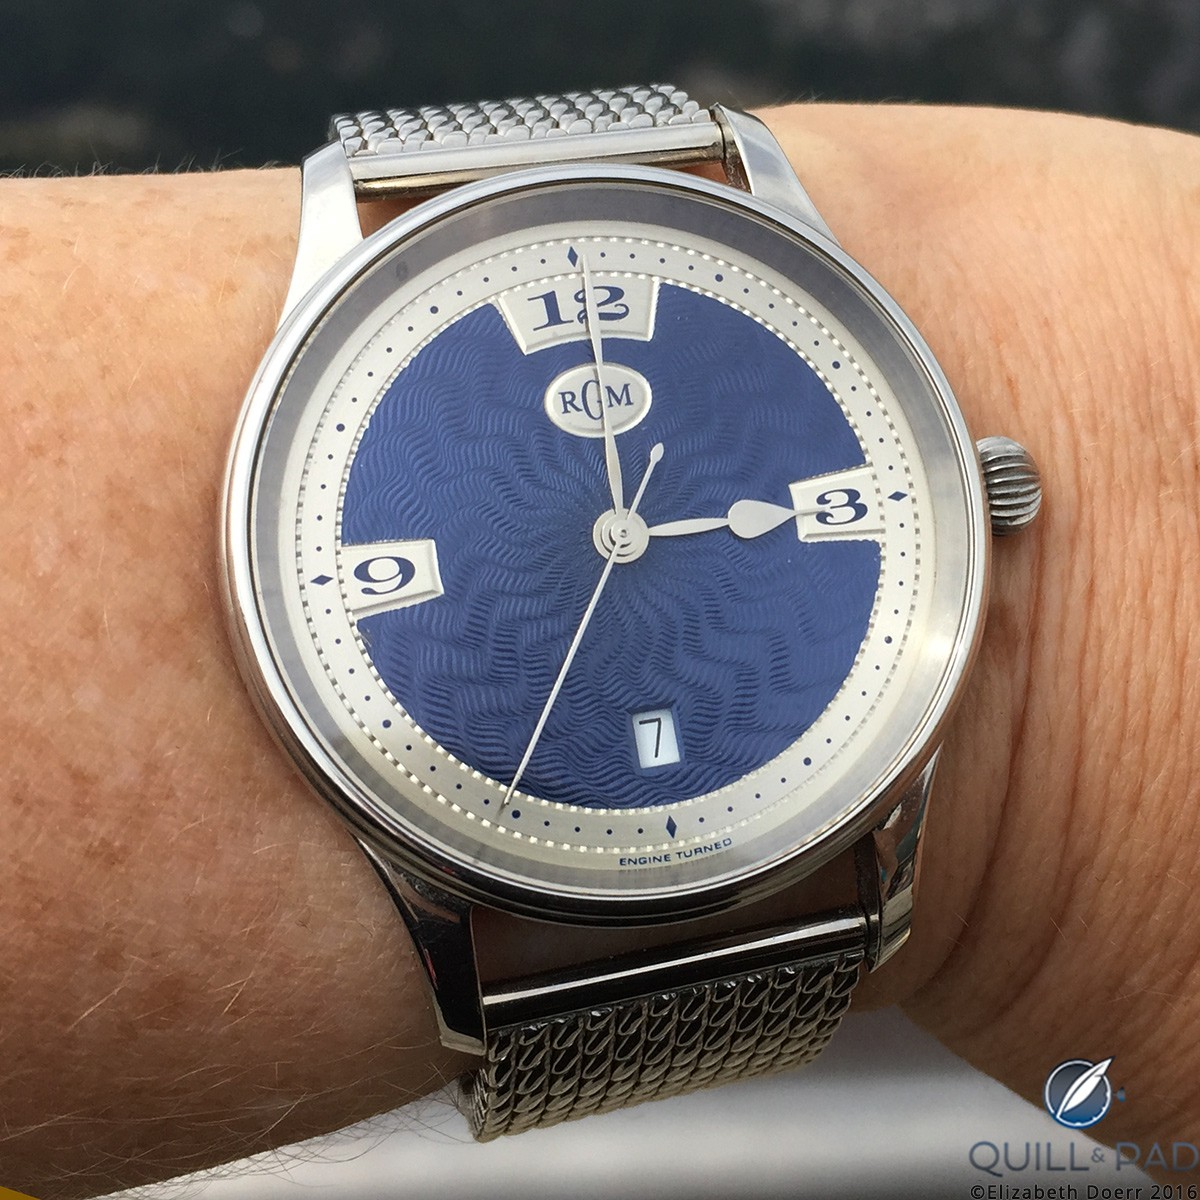 Close look at the guilloched dial of the RGM Reference 151BE